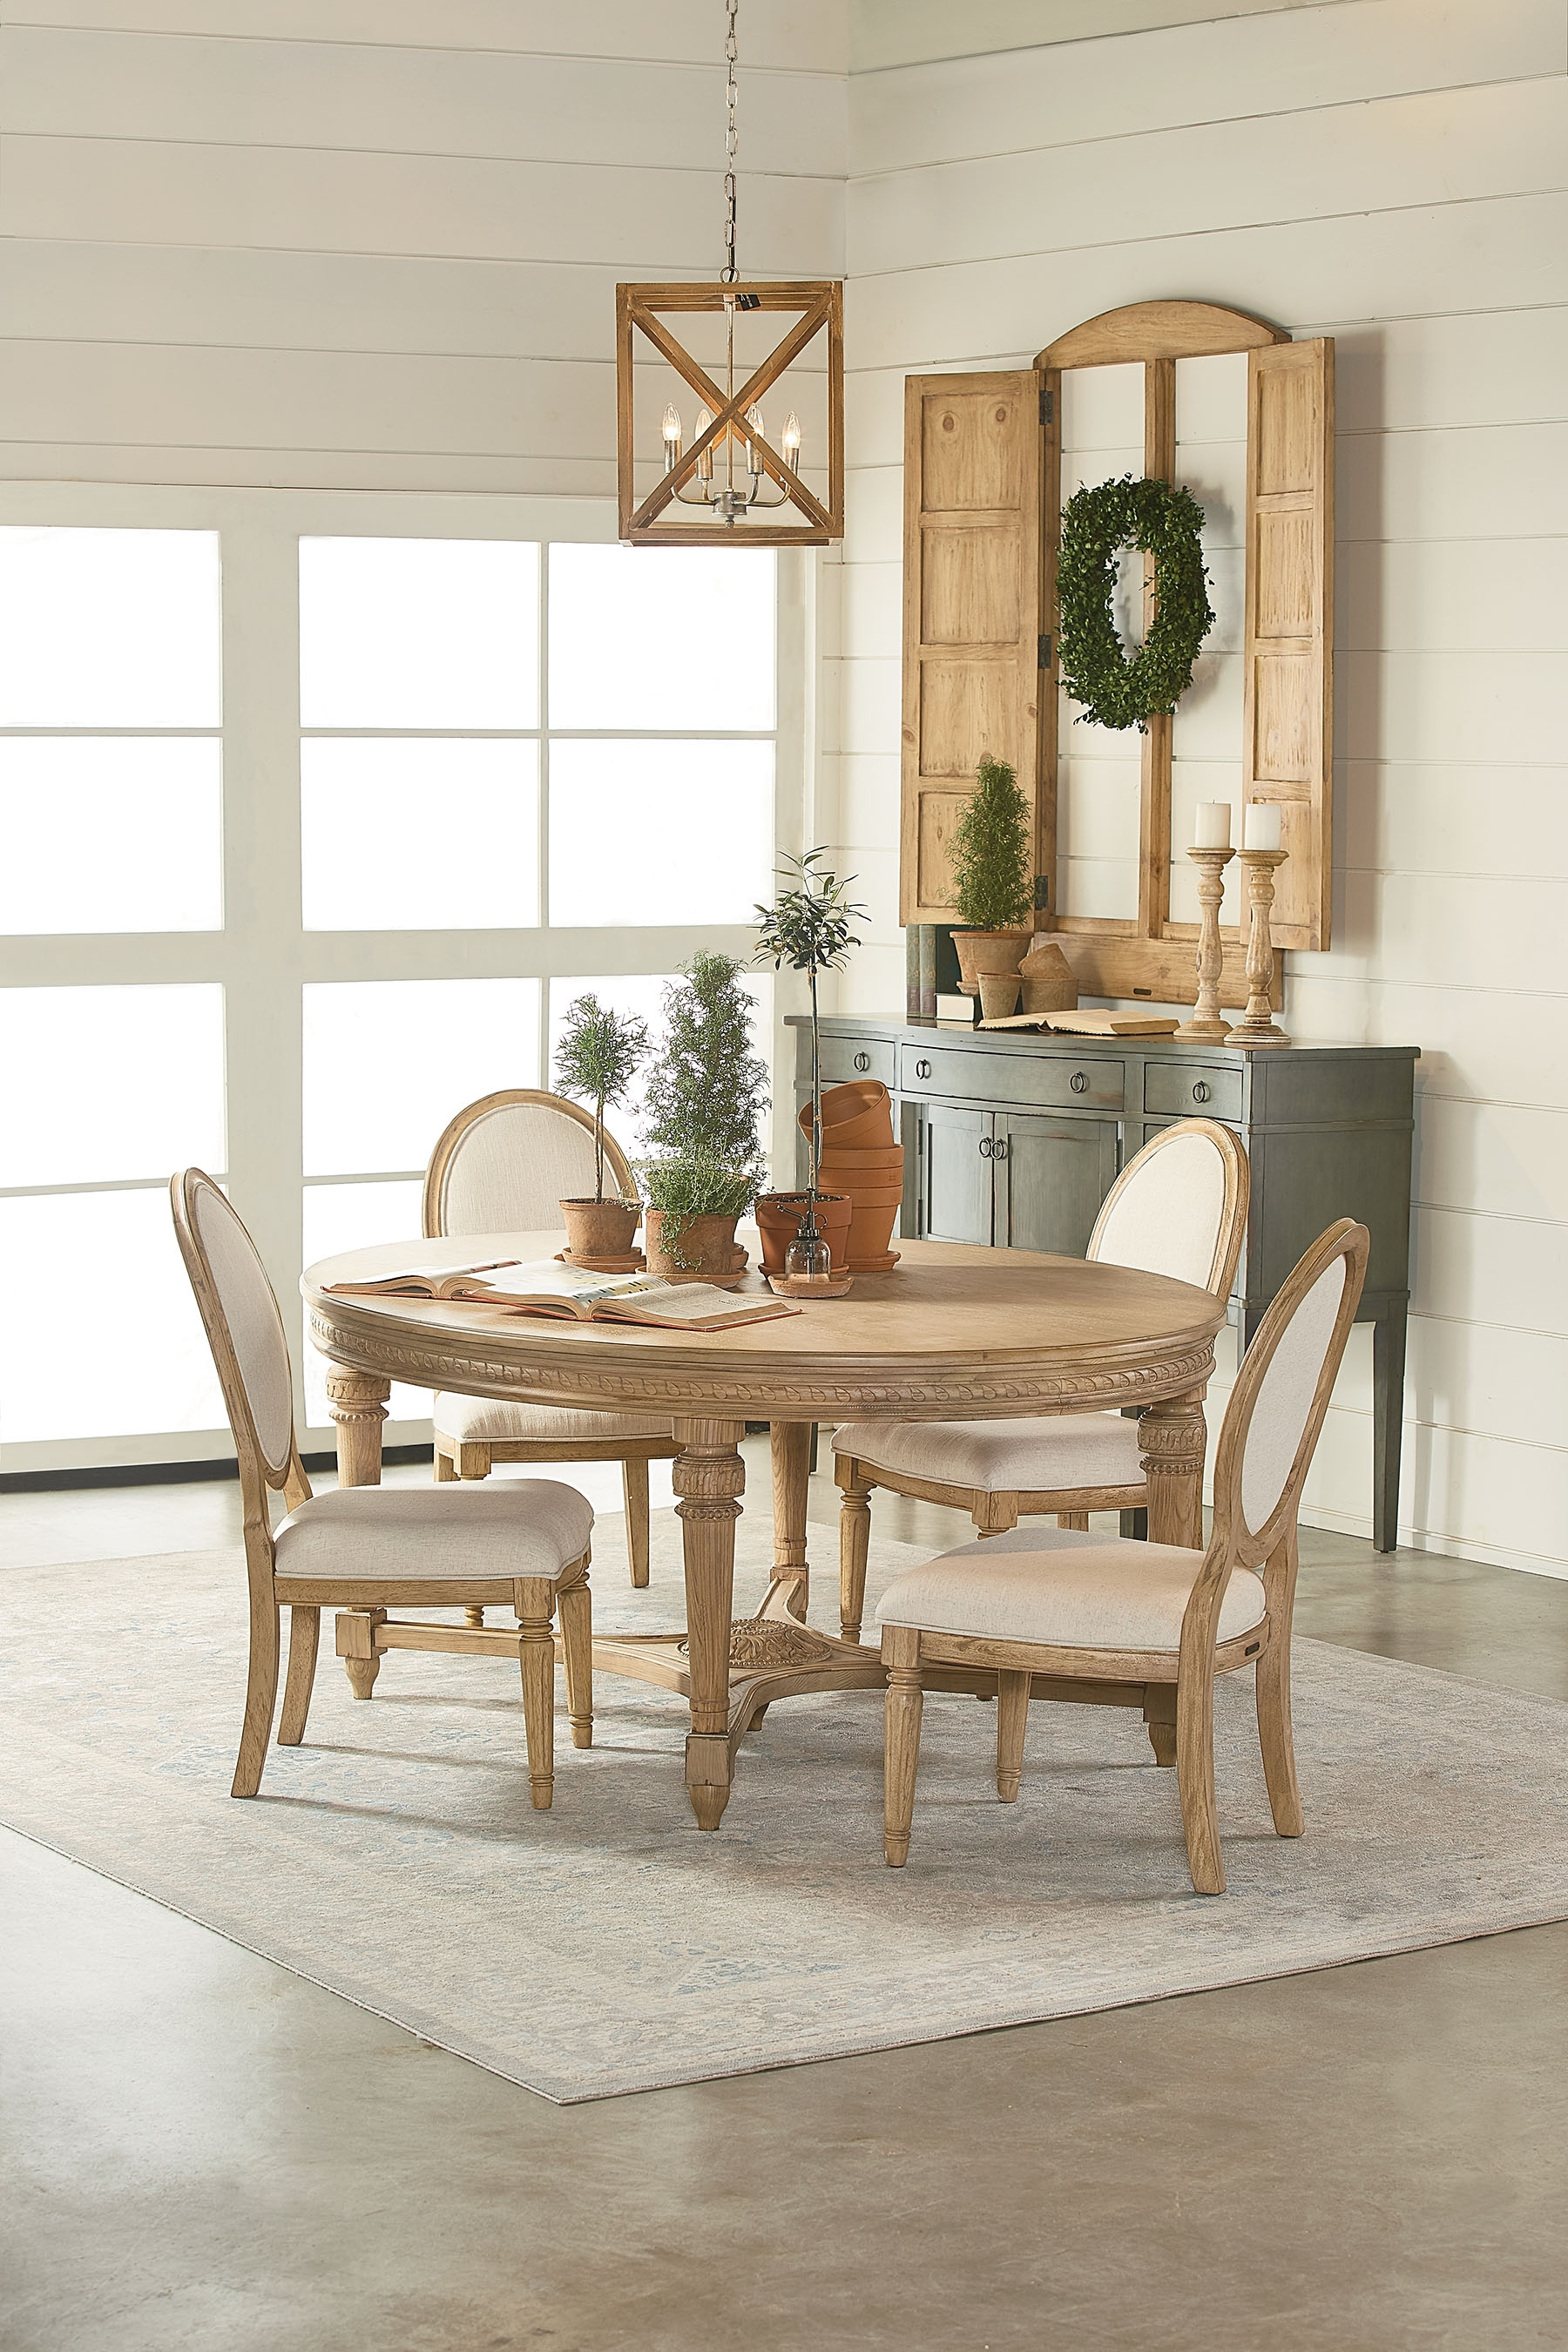 English Country Oval Dining Table – Magnolia Home In Best And Newest Magnolia Home English Country Oval Dining Tables (Gallery 3 of 25)